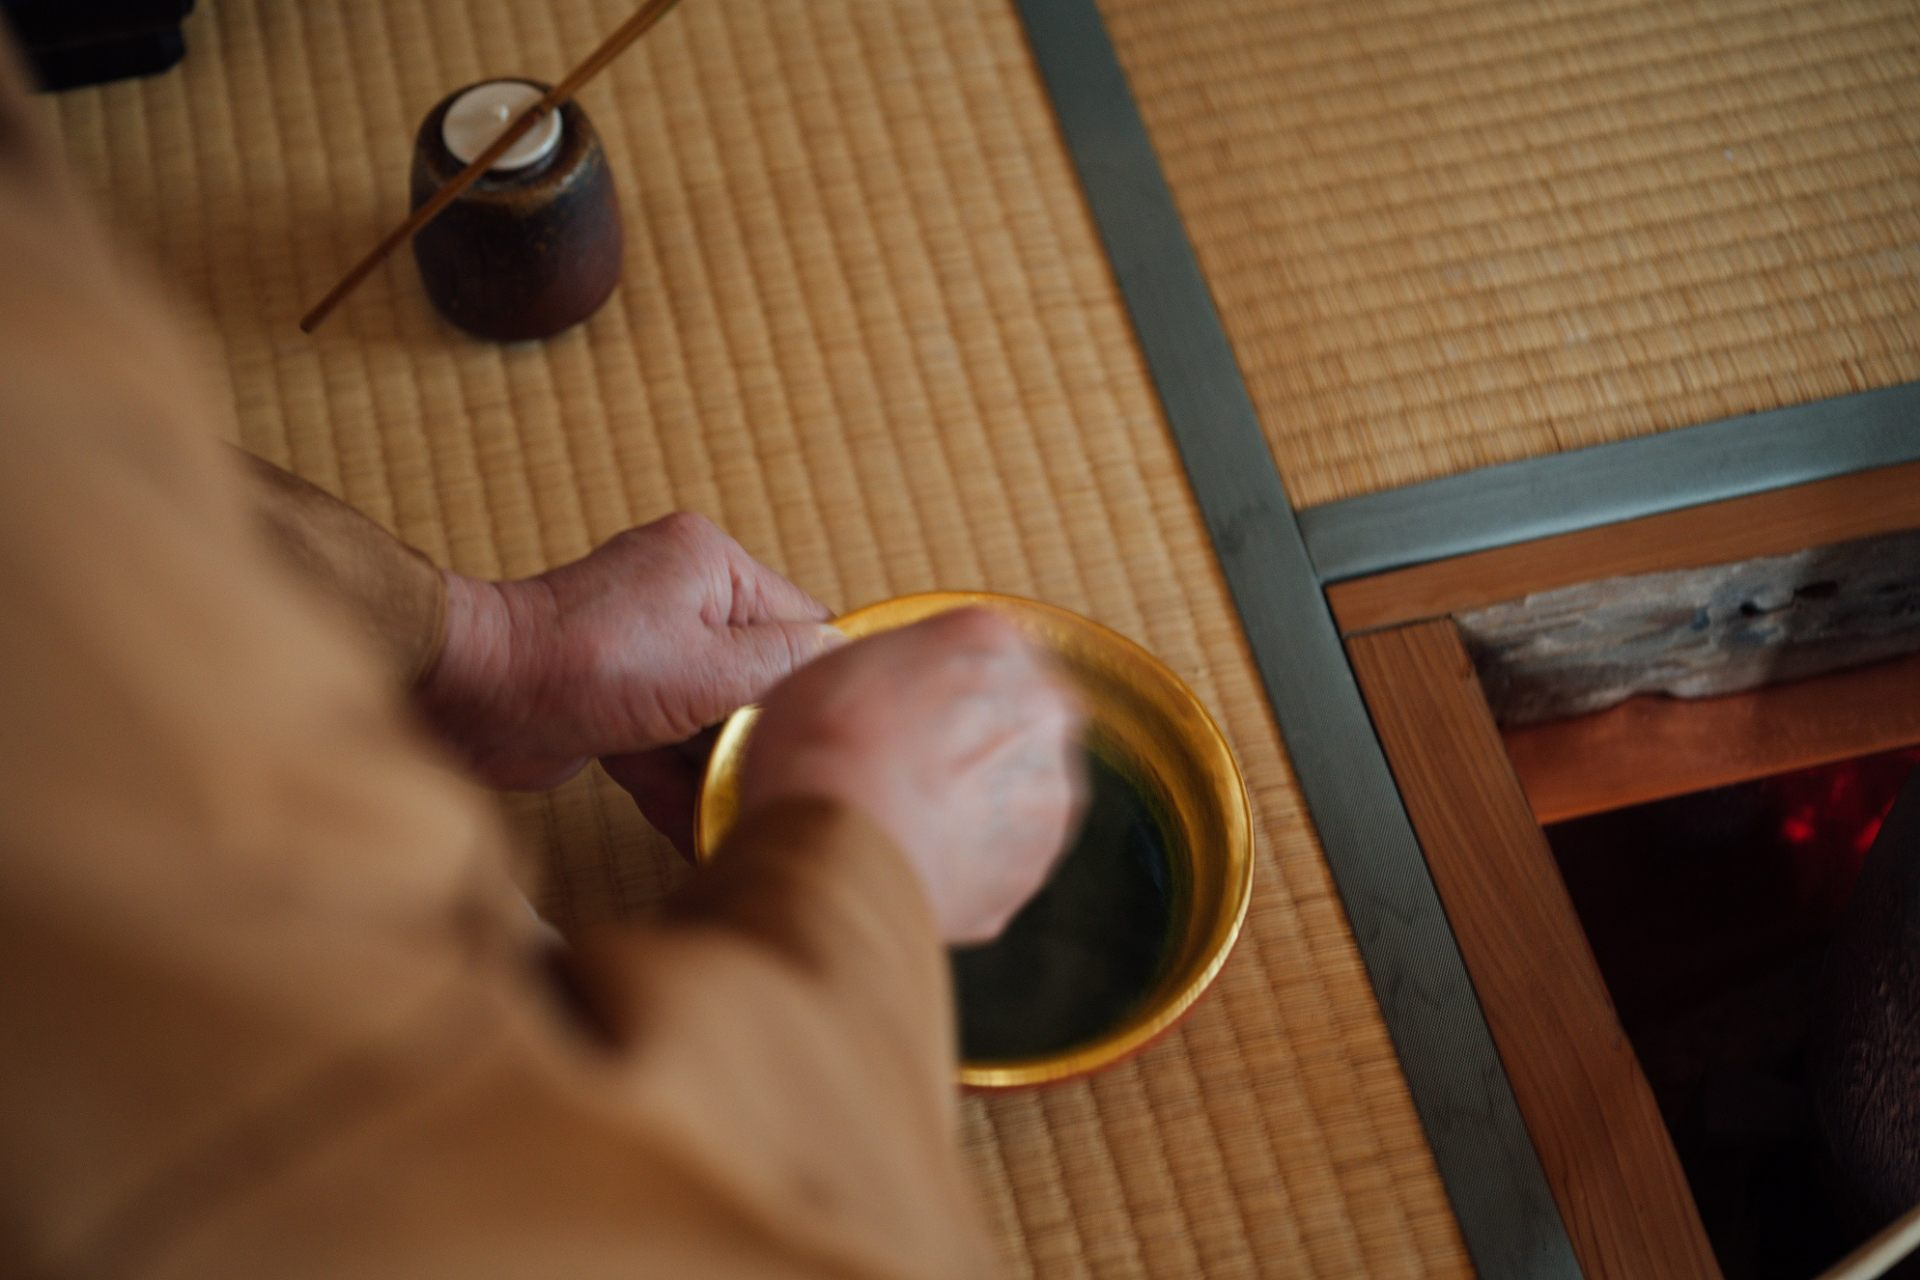 For reservations for the rice cooking activity or tea ceremony workshop, please call us at 0742-94-3500 (Mayu).